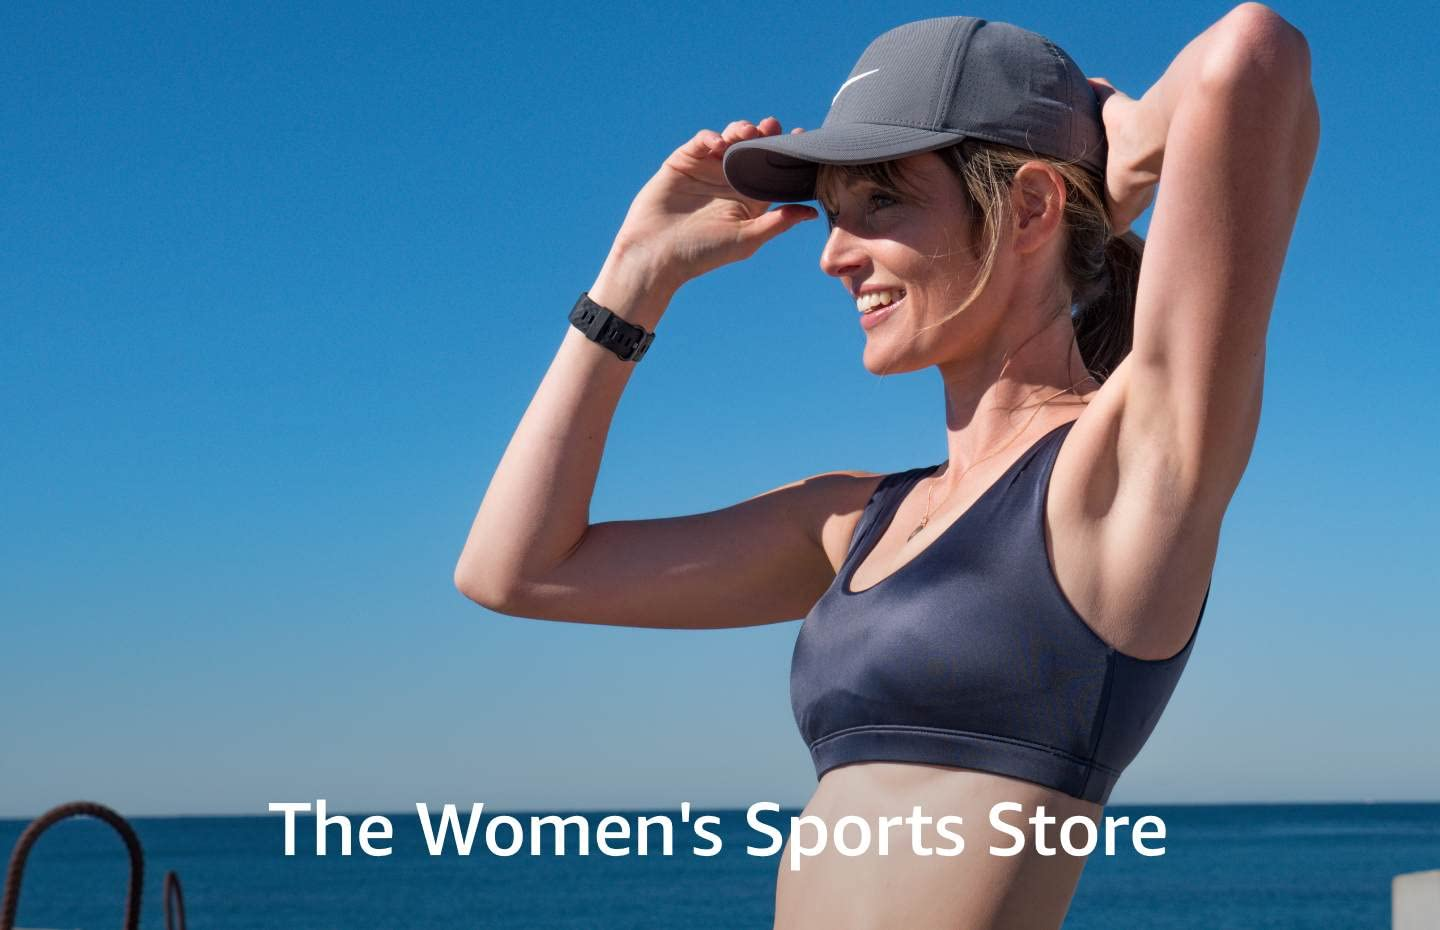 Shop the women's sport store